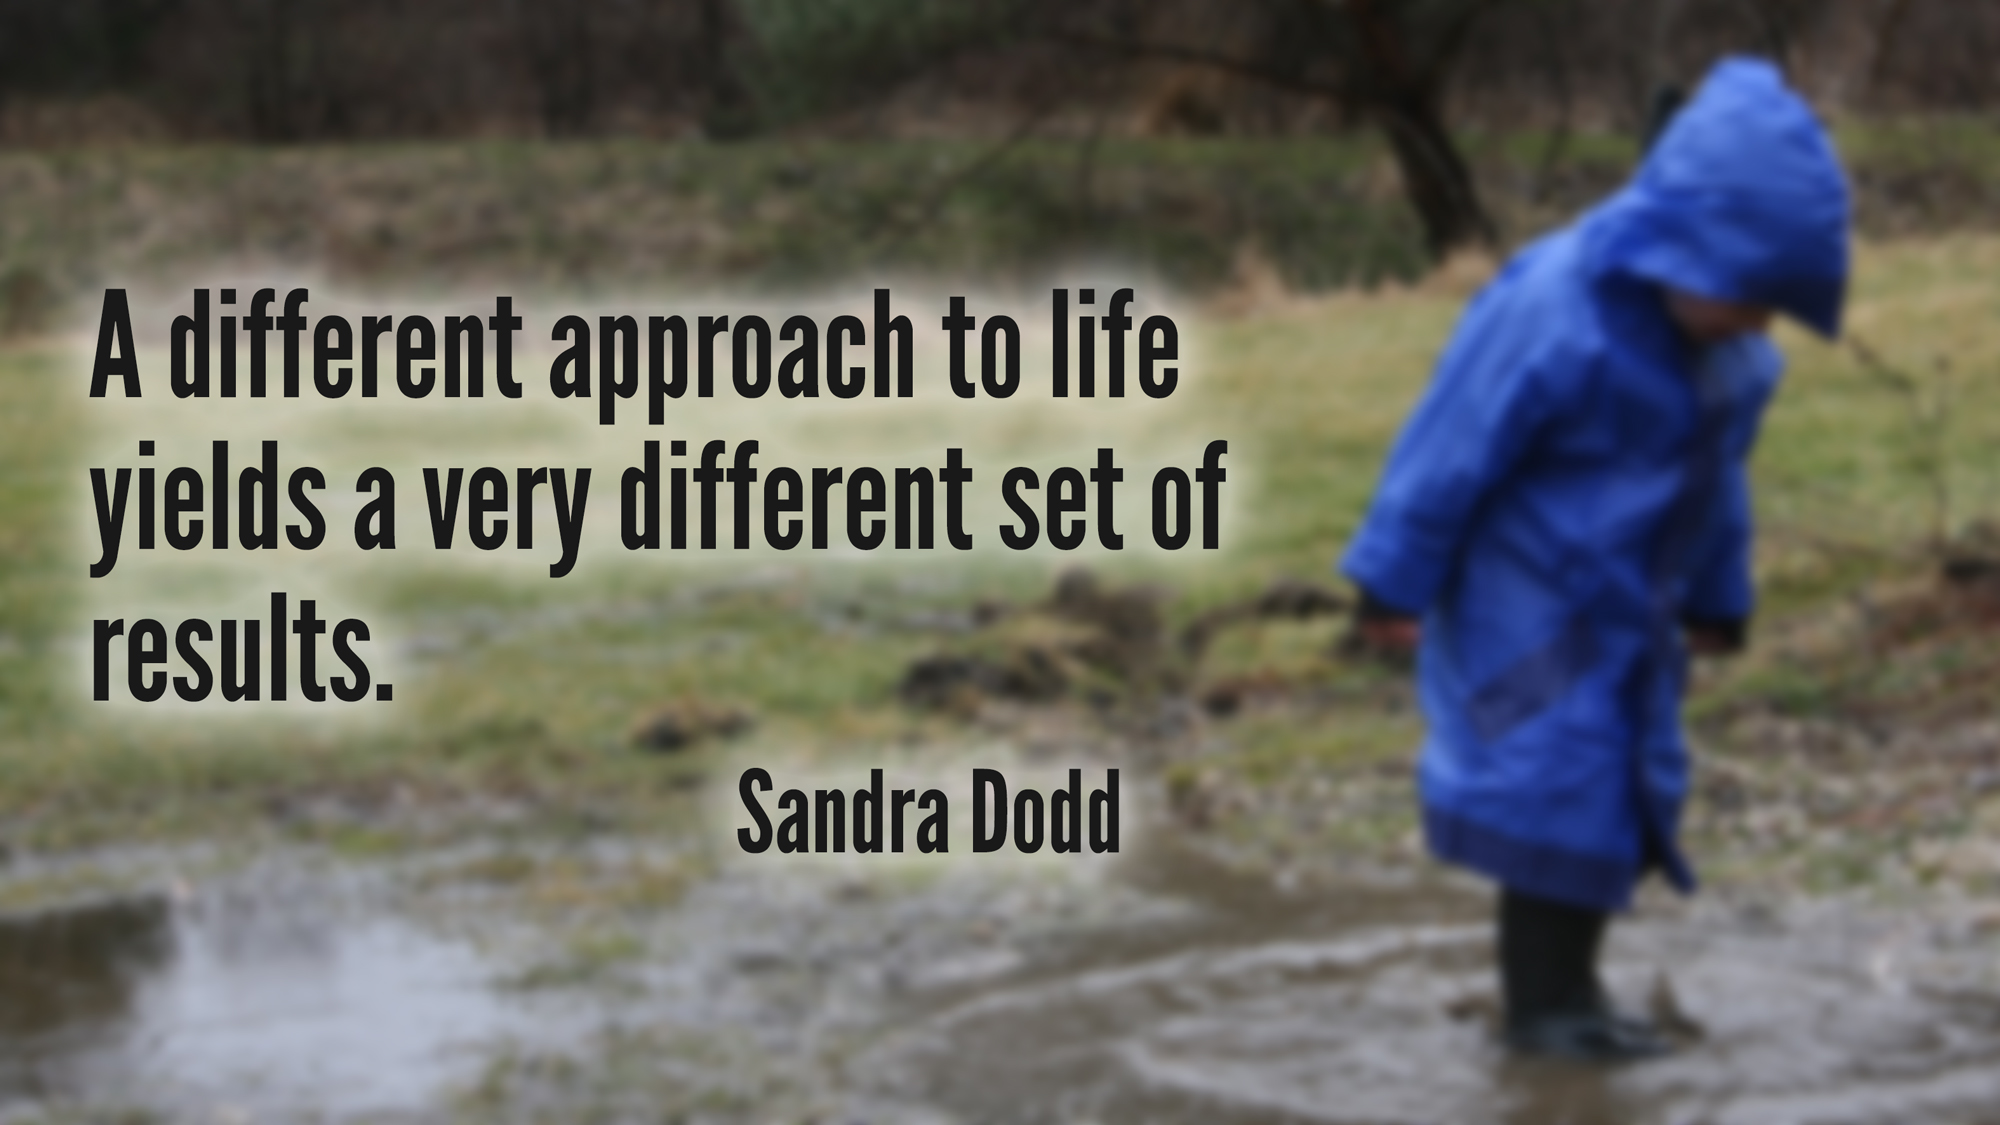 A different approach to life yields a very different set of results. —Sandra Dodd